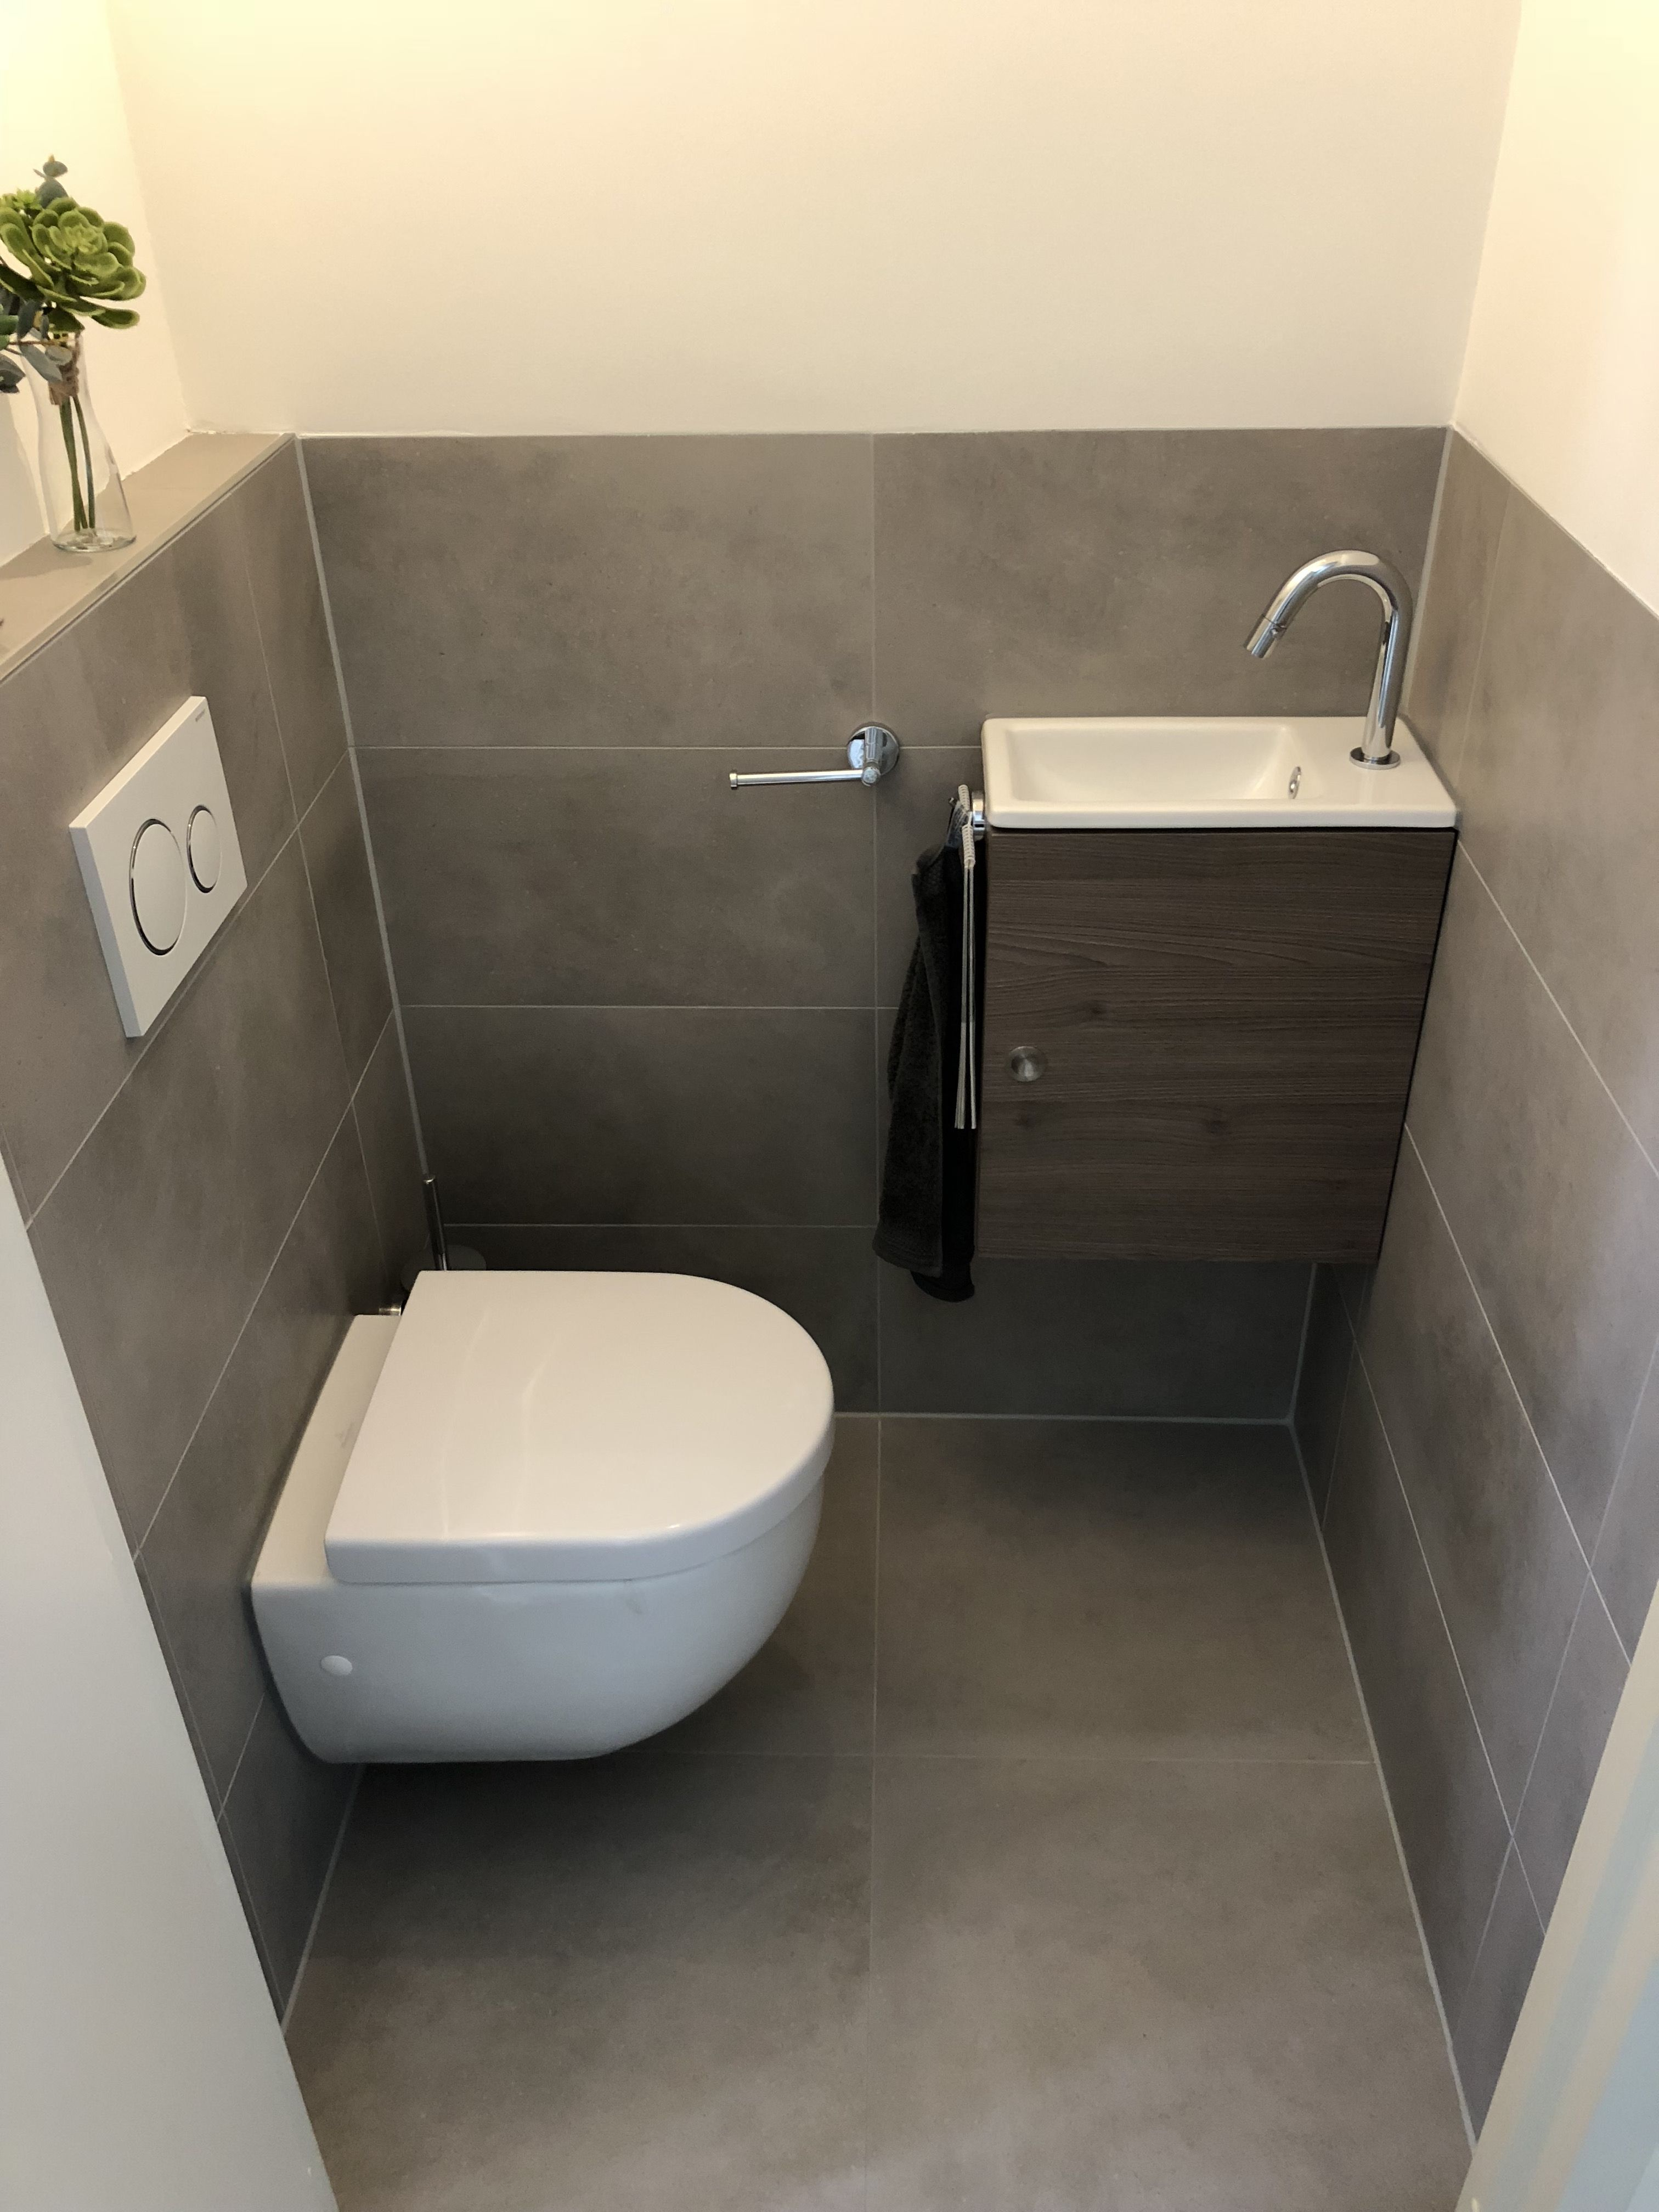 Photo of Betonlook en cementlook tegels toilet